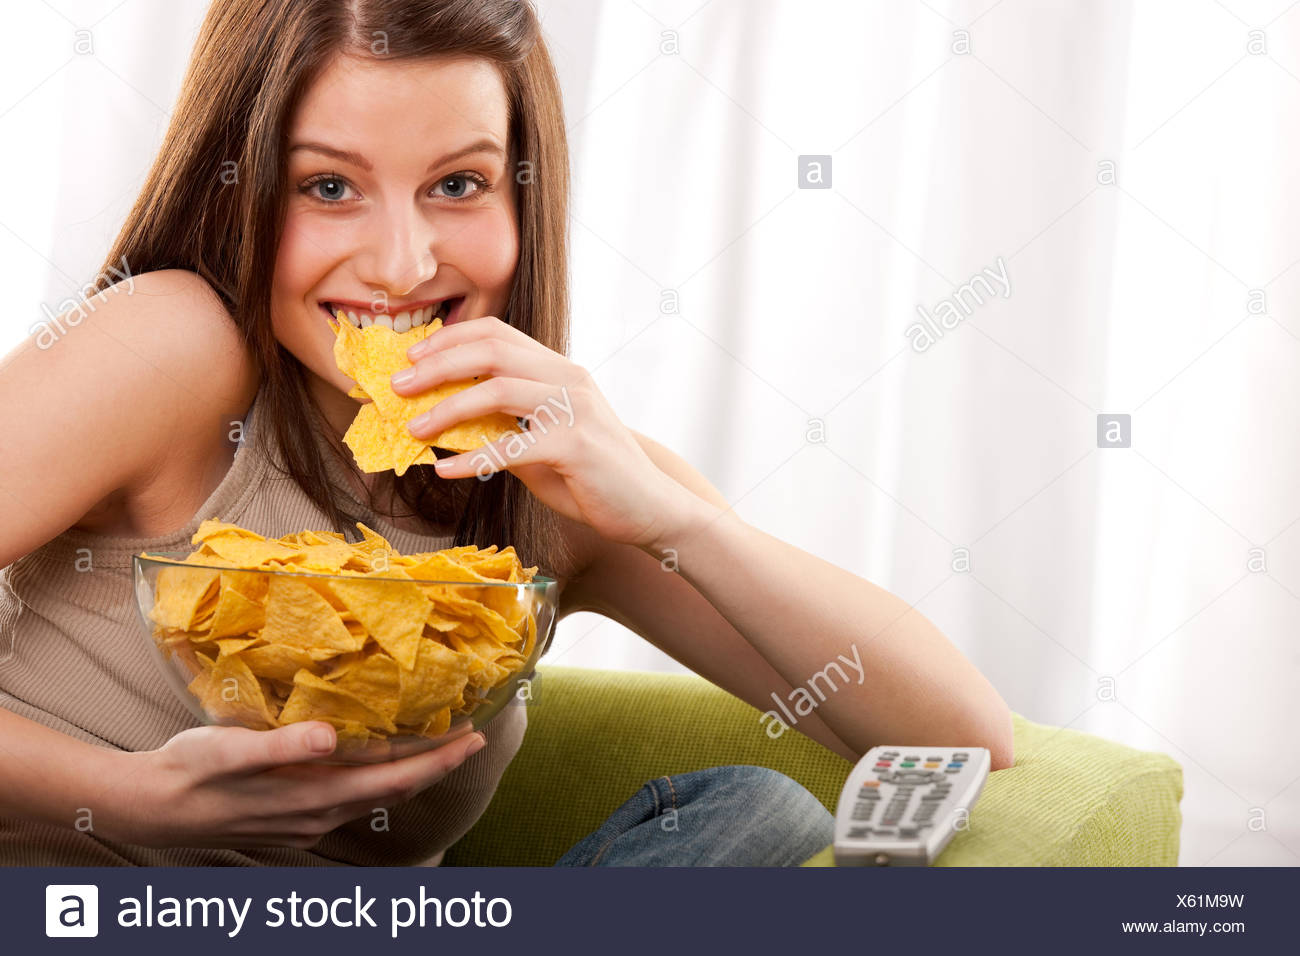 how to stop eating potato chips